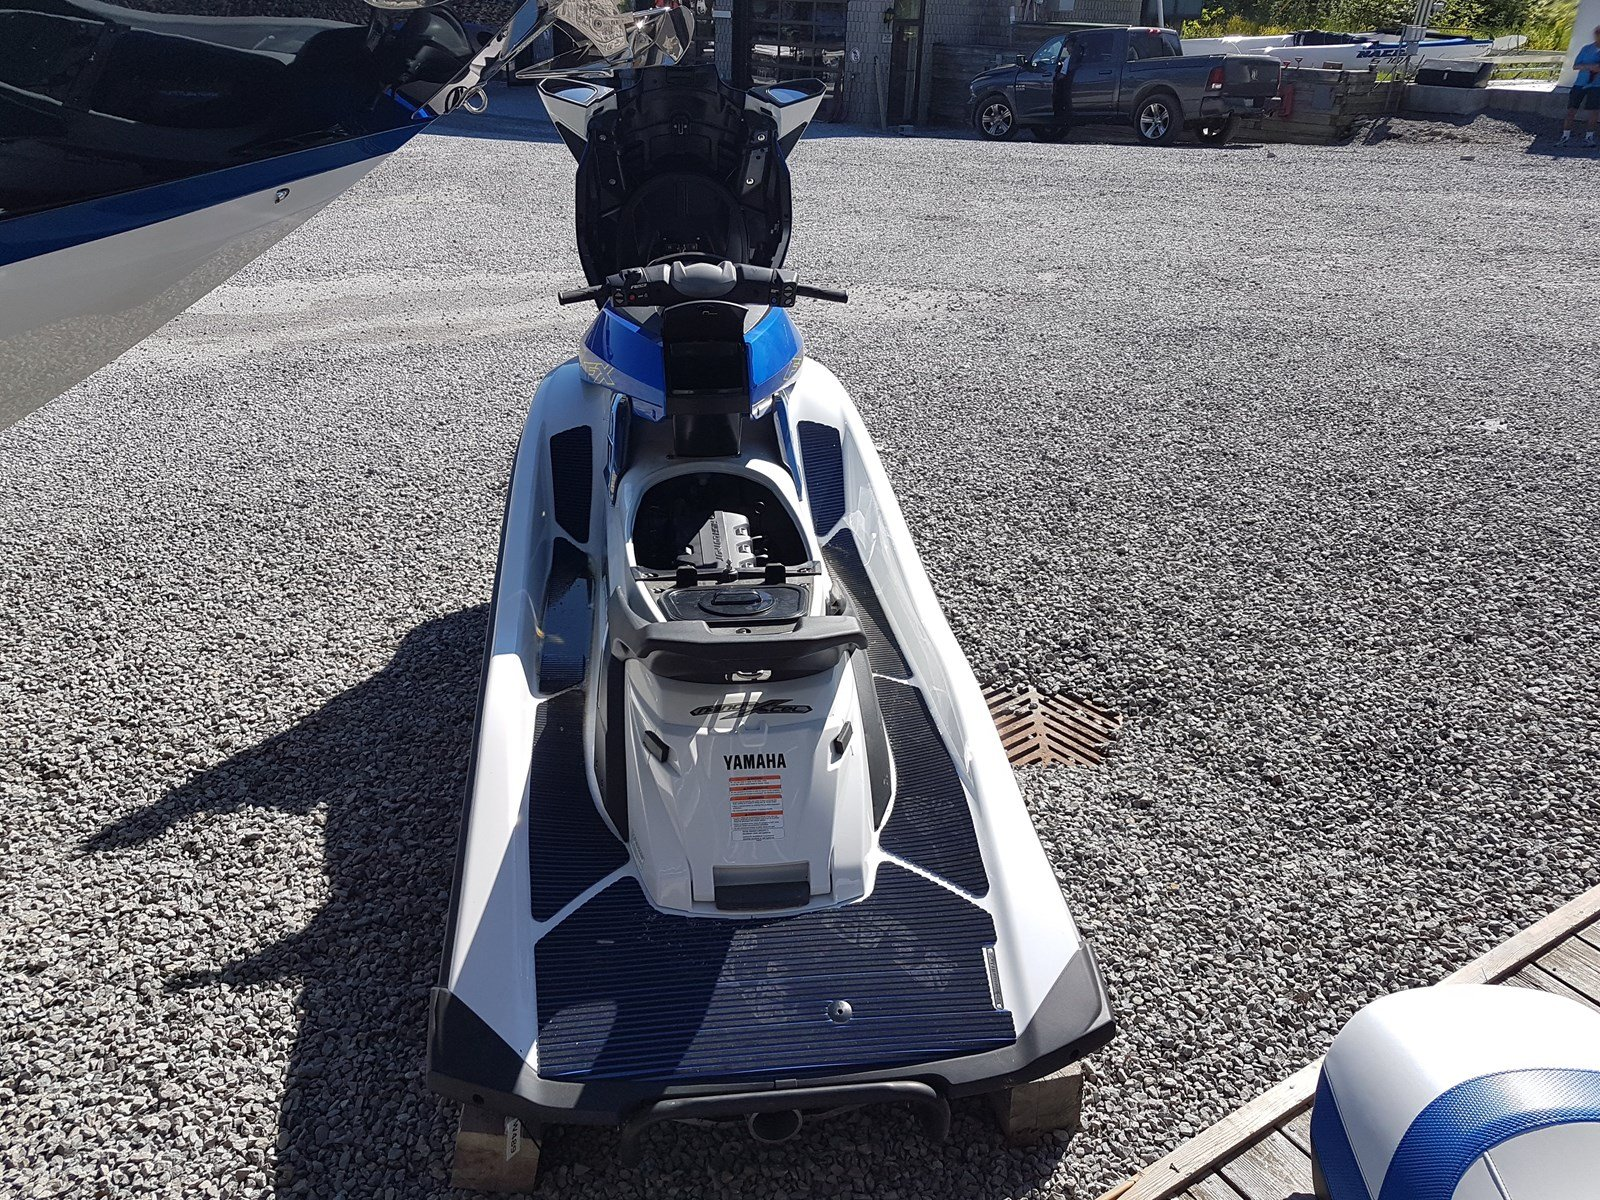 New 2018 Yamaha WaveRunner FX HO JET PUMP PROPULSION - RIDE TECHNOLOGY